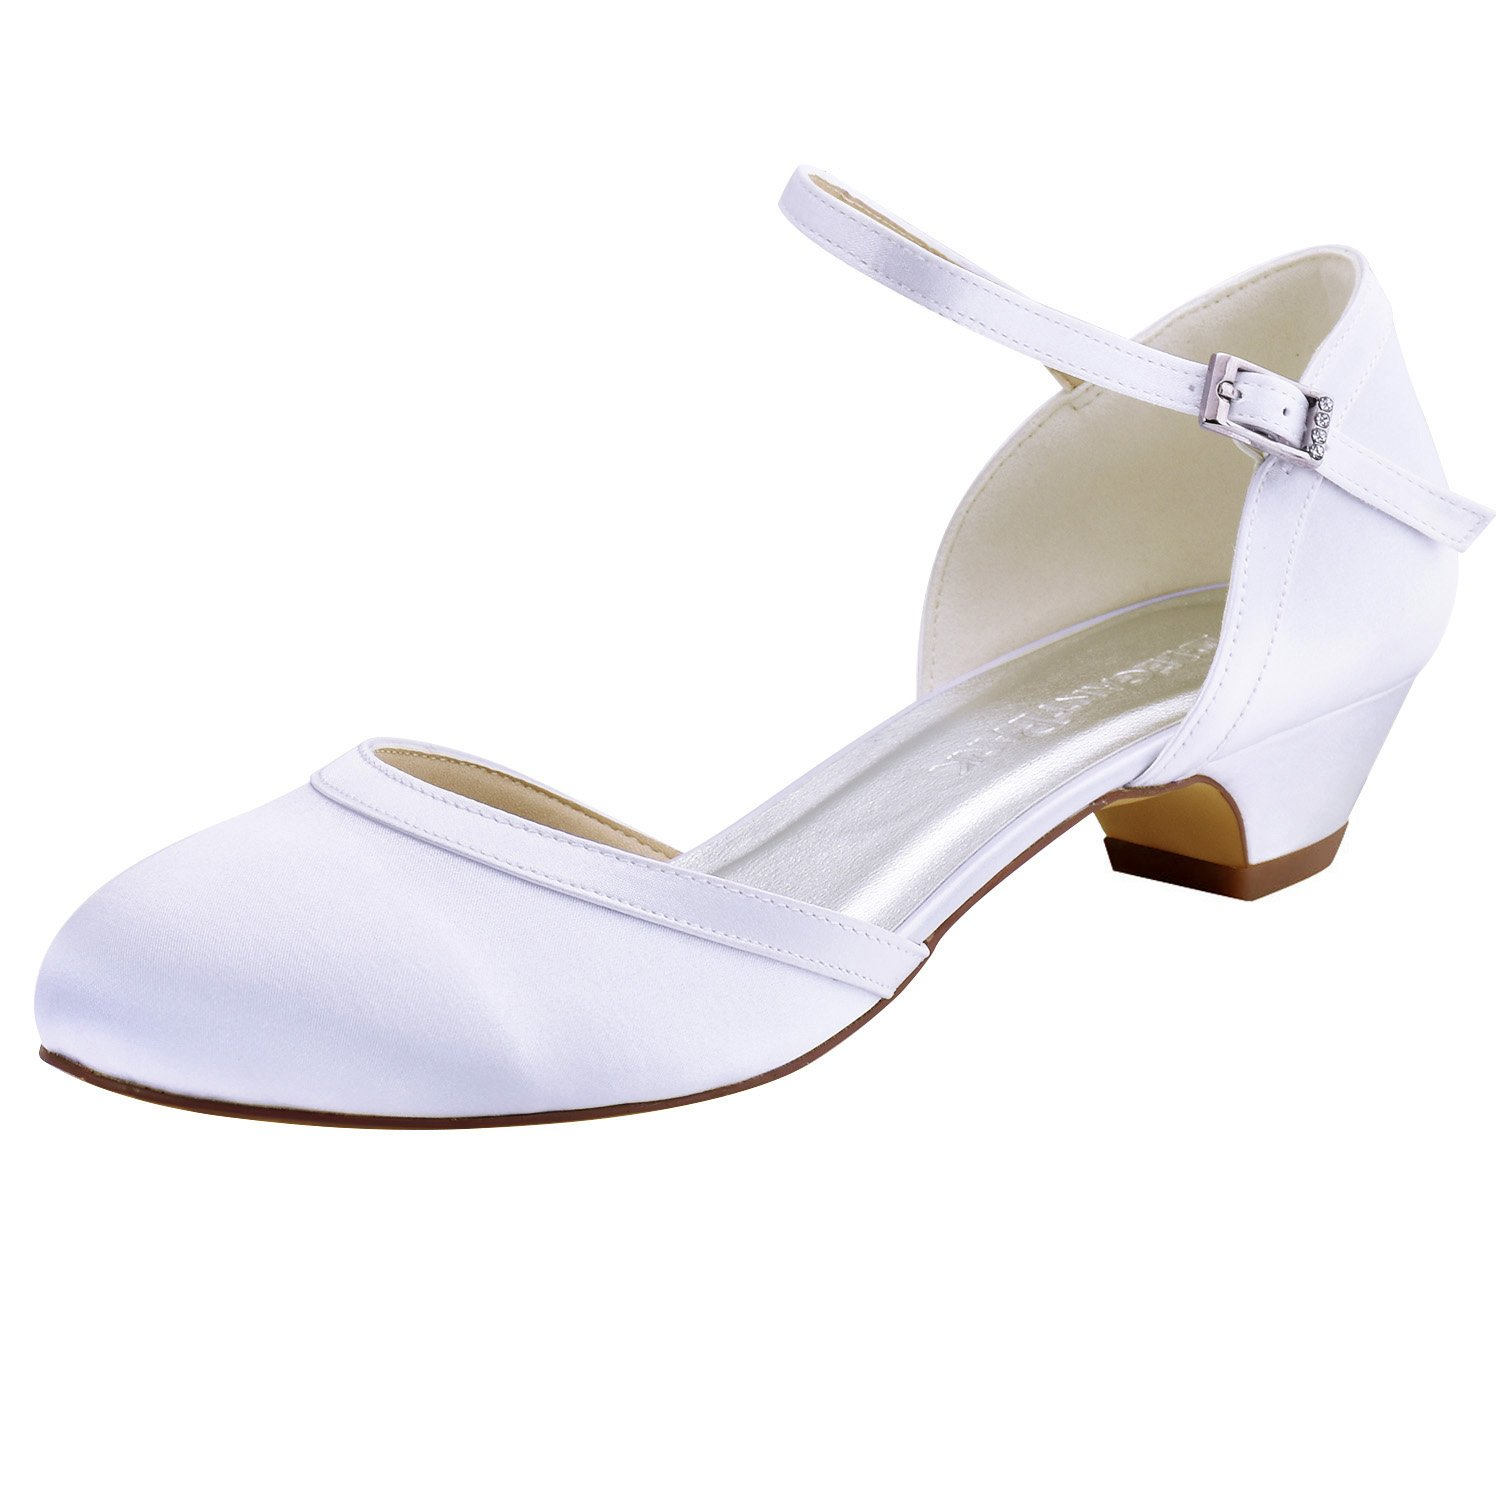 ElegantPark HC1621 Women Comfort Chunky Heel Closed Toe Ankle Strap Satin Bridal Wedding Shoes White US 9